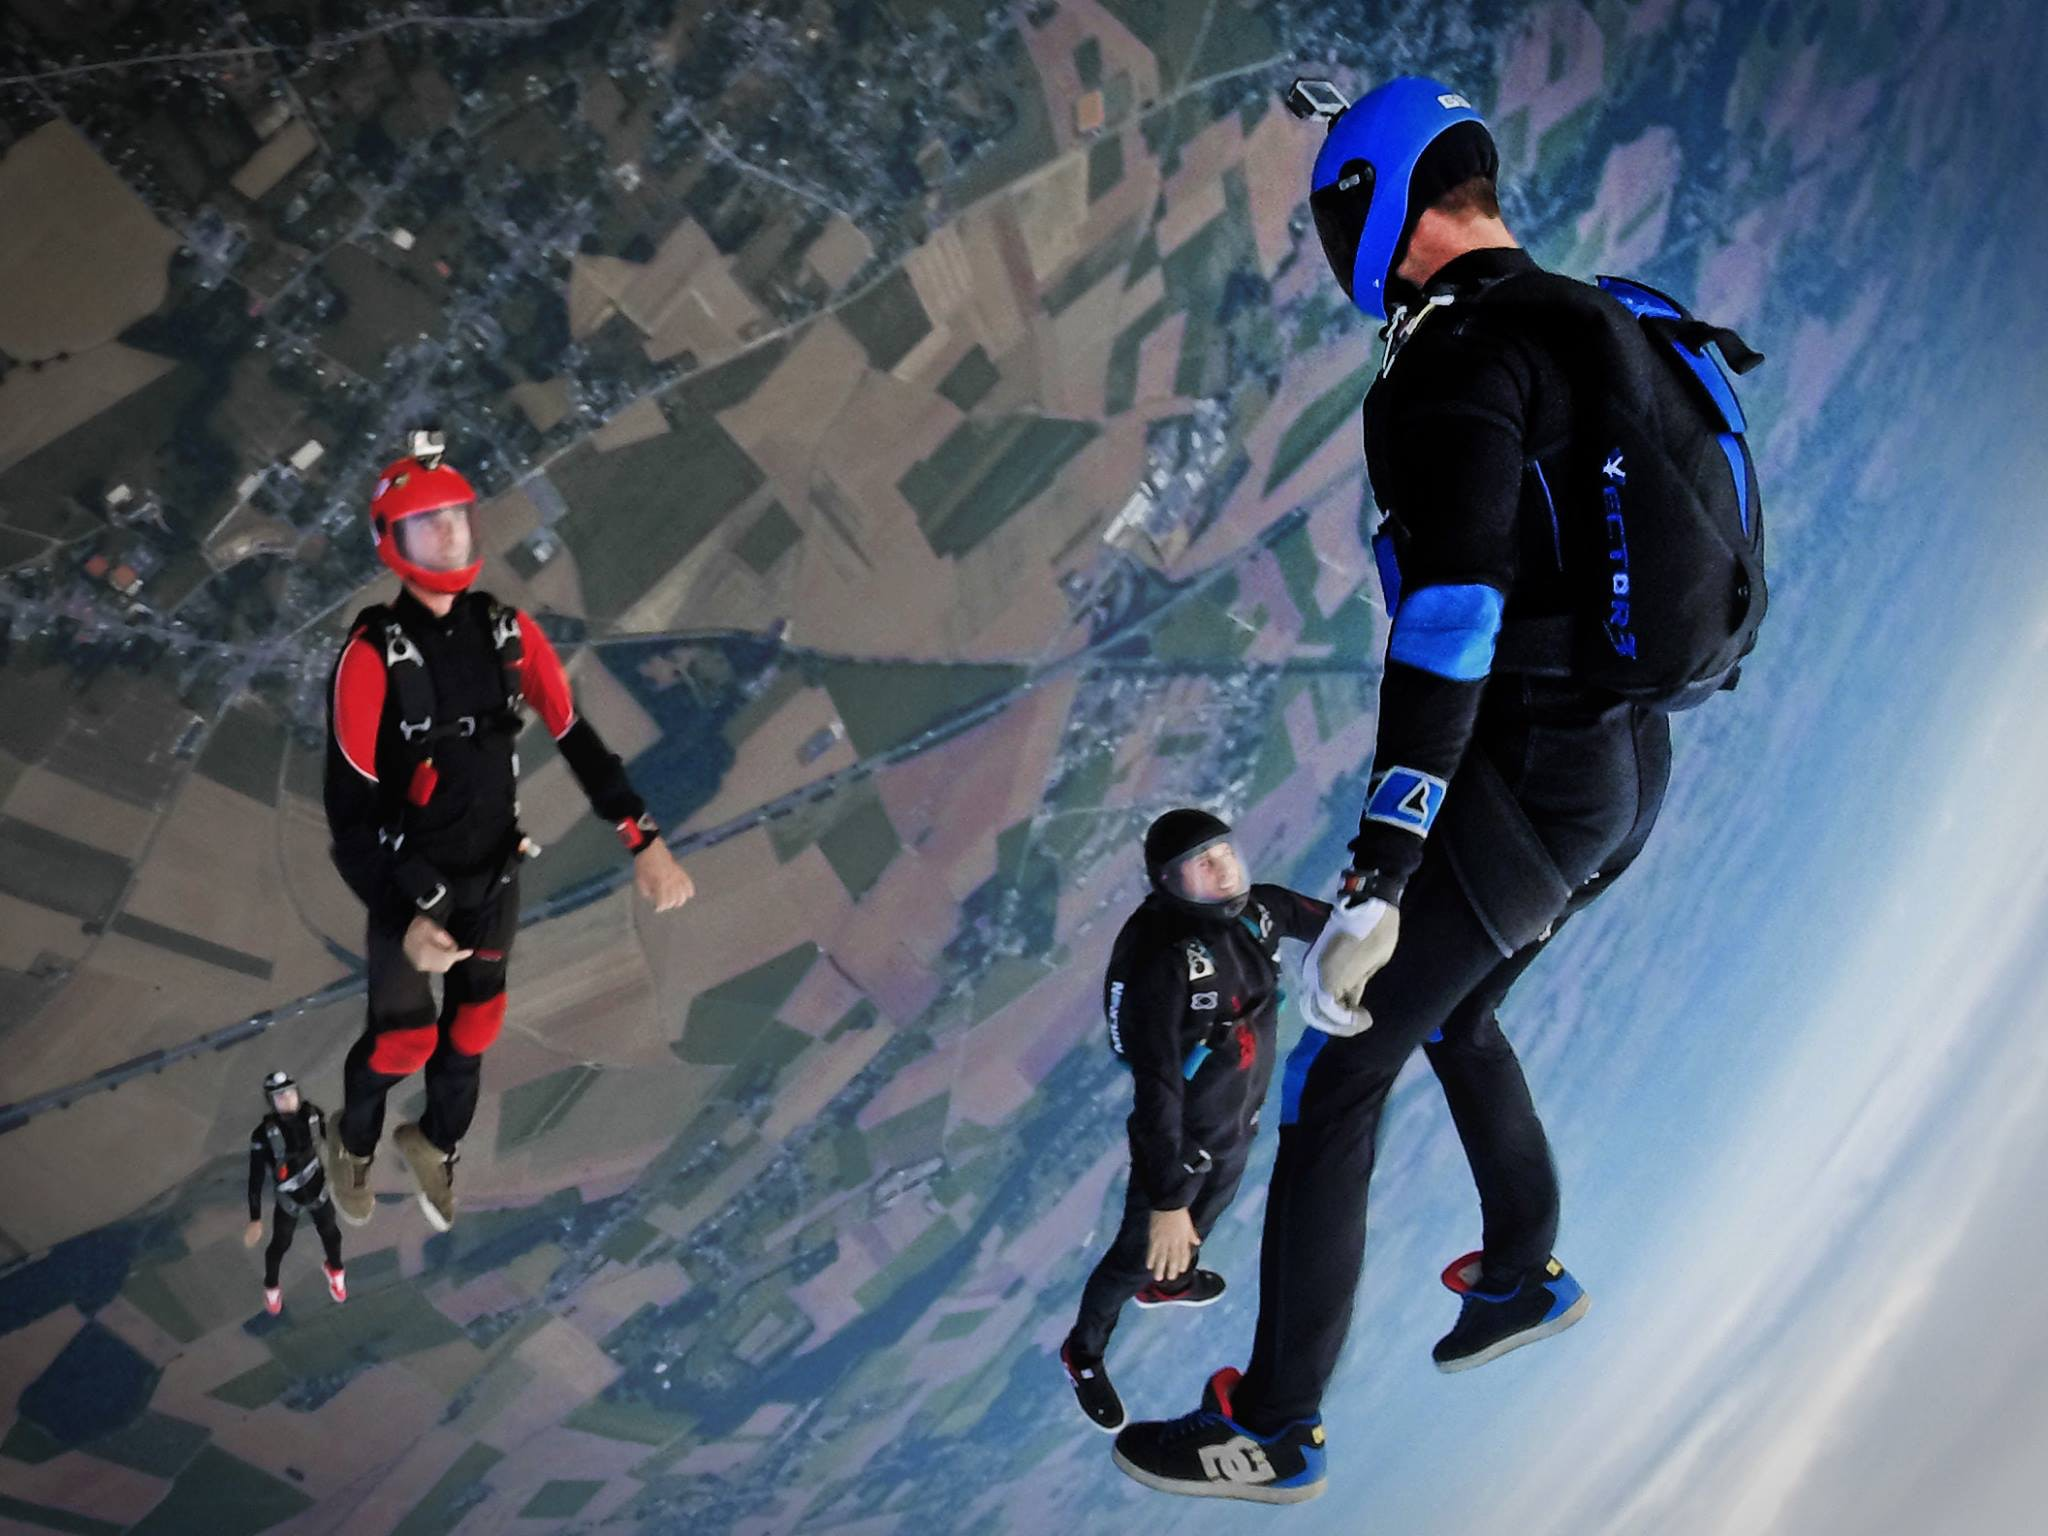 Four people skydiving wearing either red or blue suits at Para Club Aérodrome de Namur